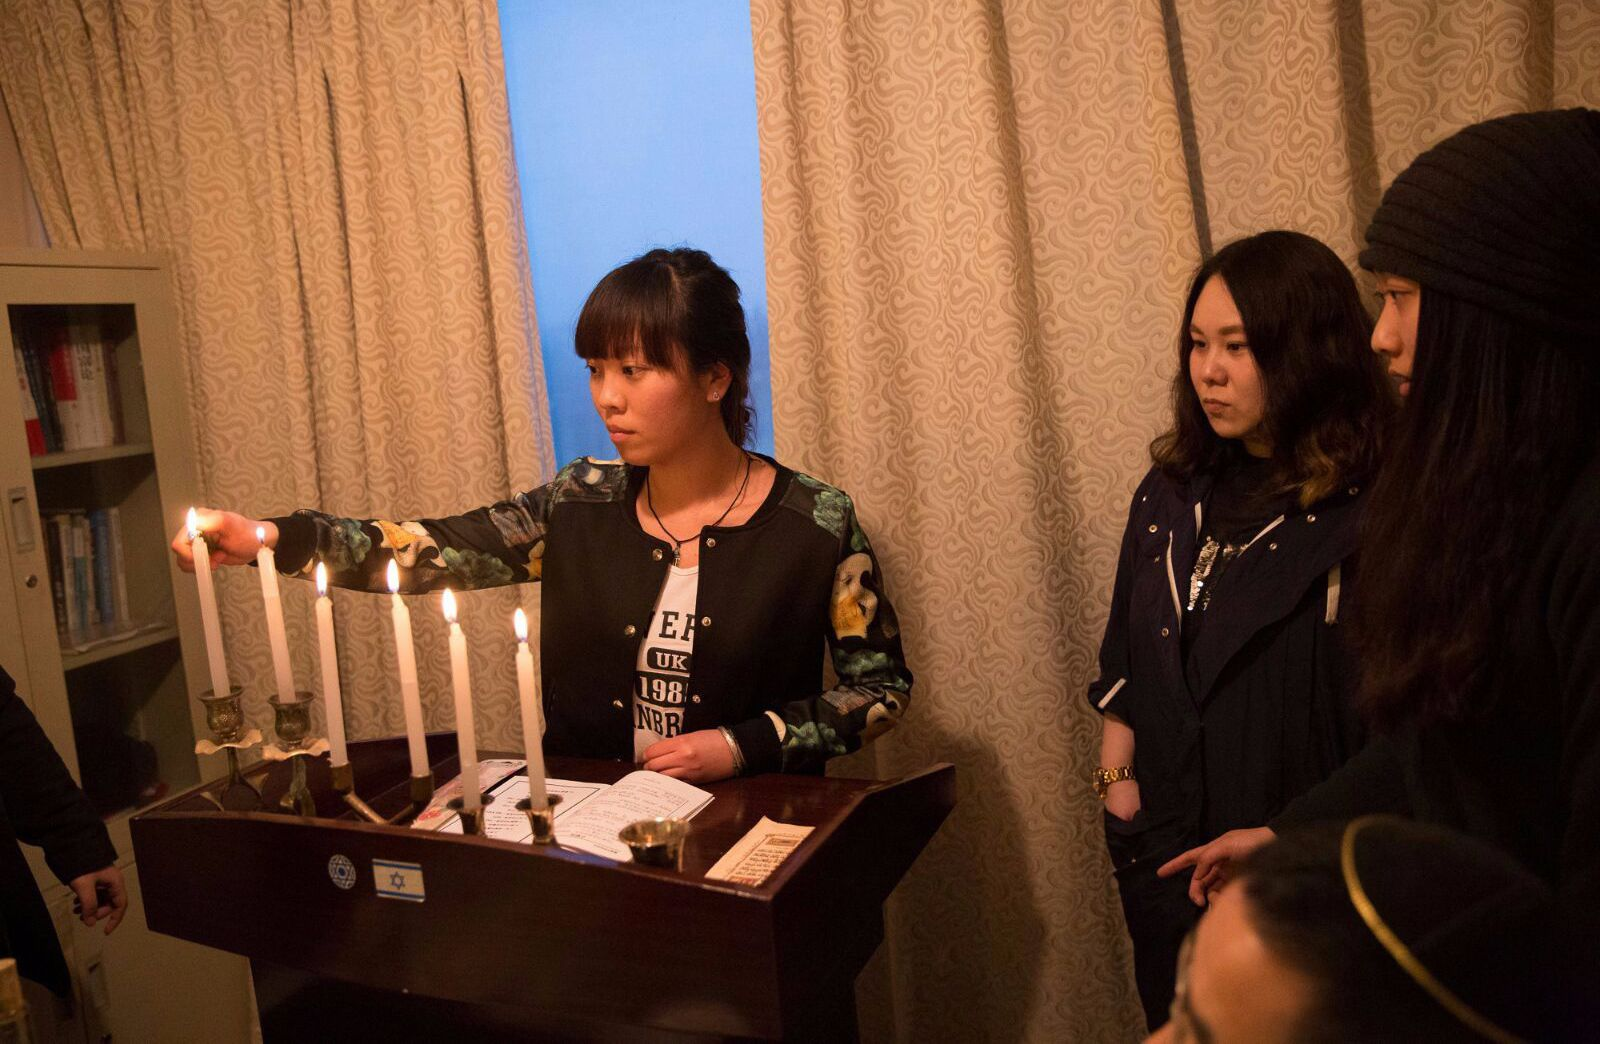 All in the family: Chinese Jews gather for Hanukkah.